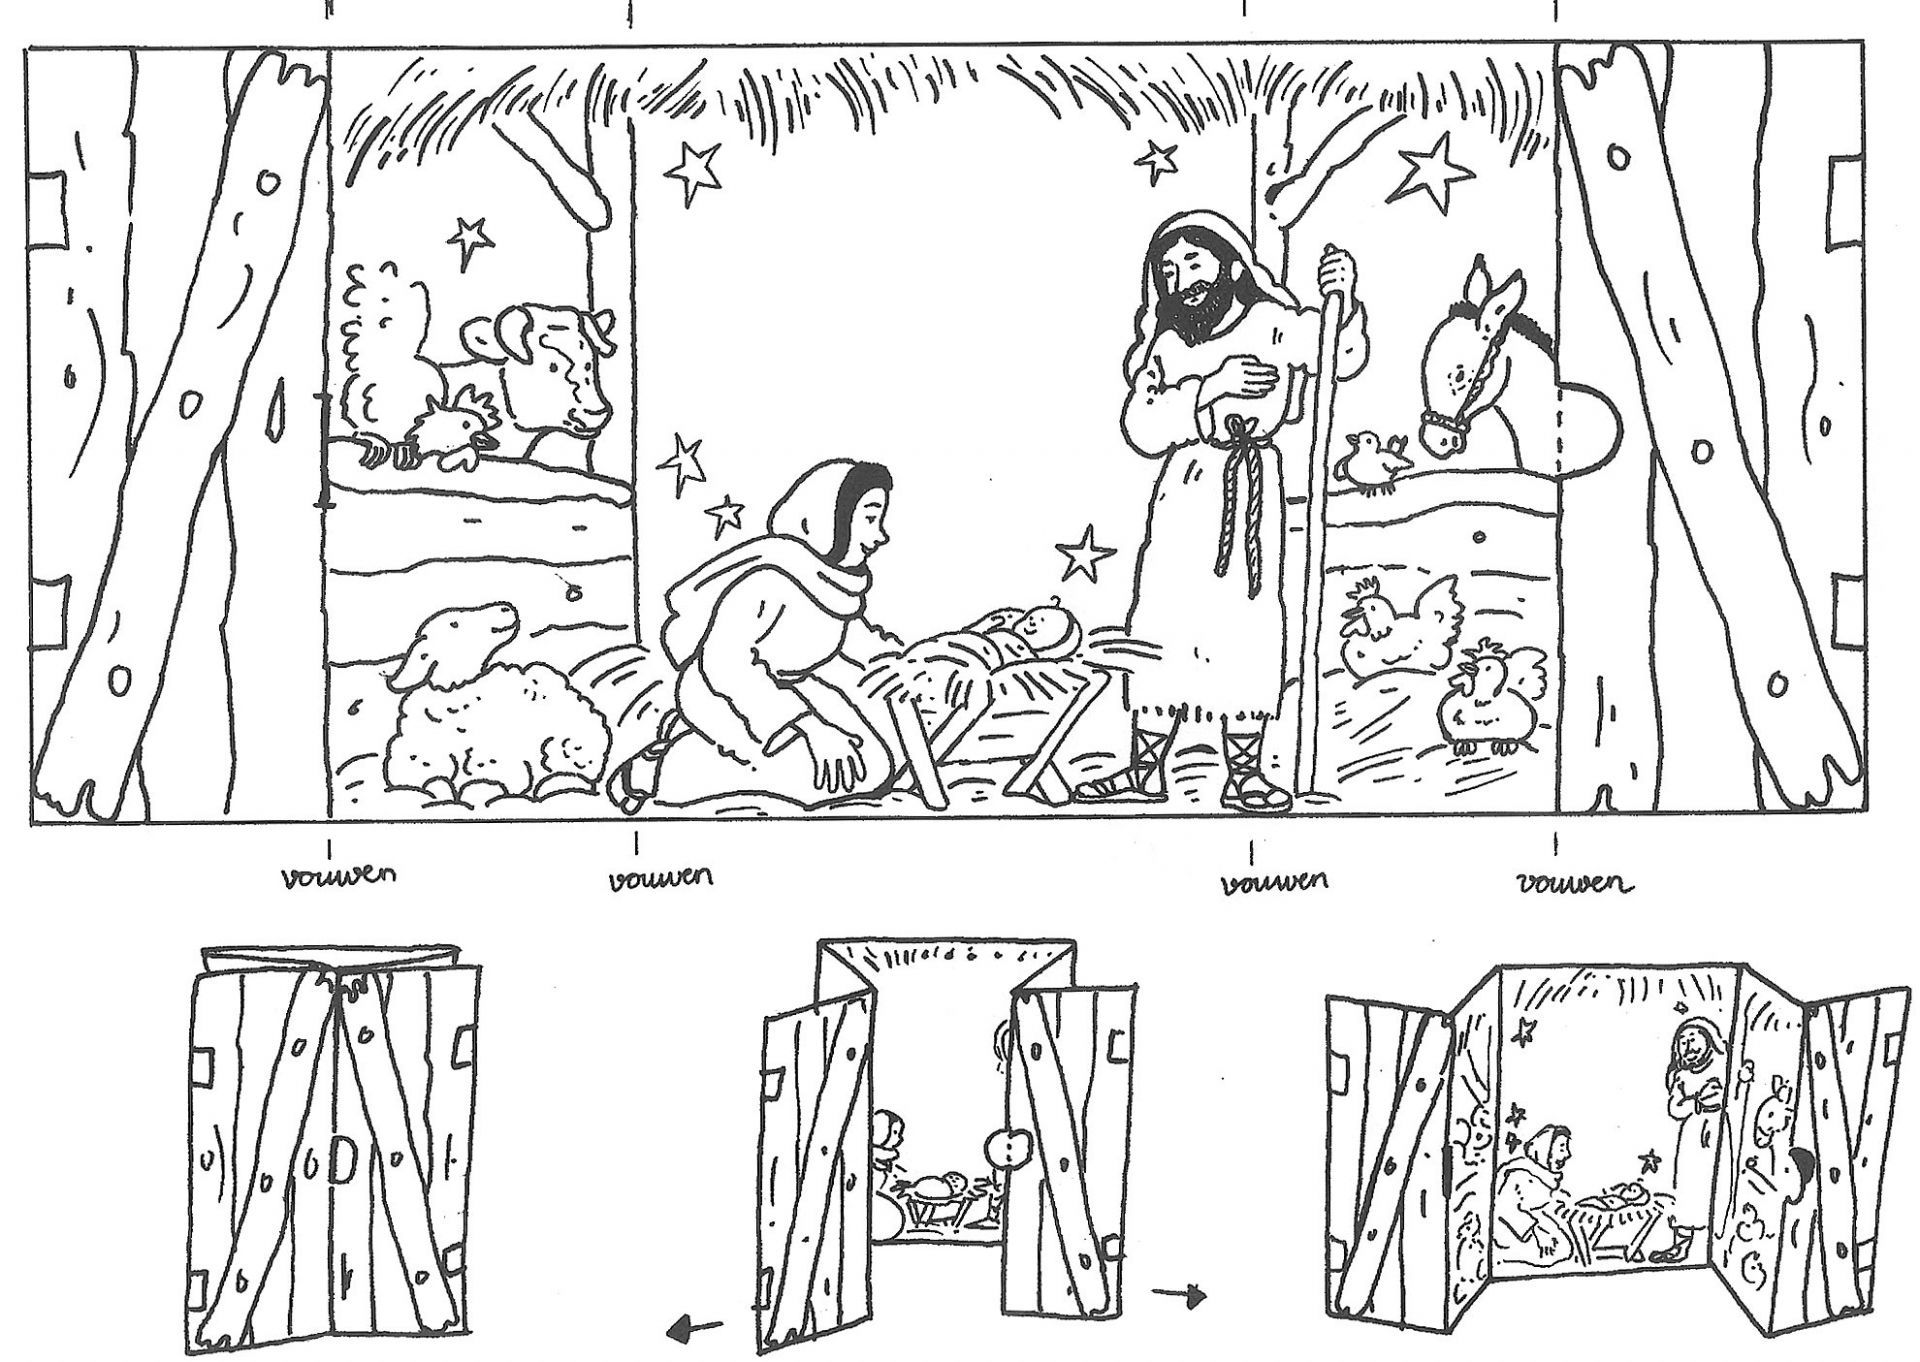 paper nativity scene cut out 115 best paper doll nativity cutouts images on pinterest scene nativity cut paper out